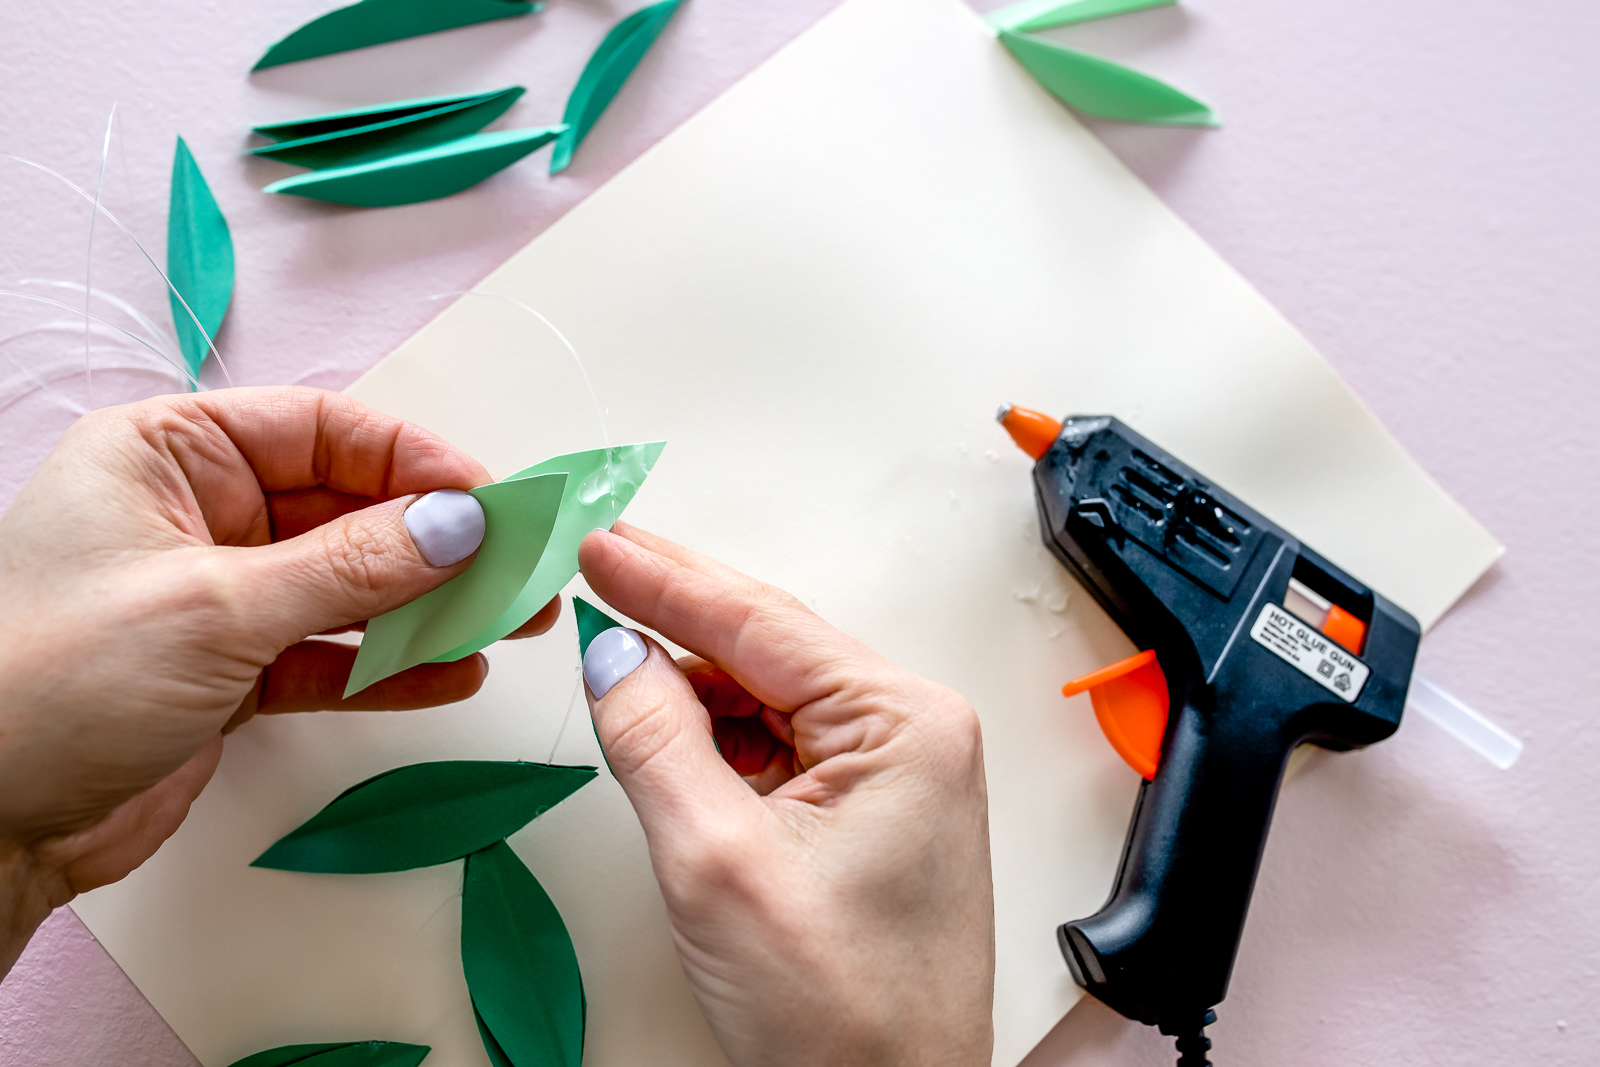 DIY_Paper_Leaf_Baby_Mobile_by_Clever_Poppy_gluing.jpg